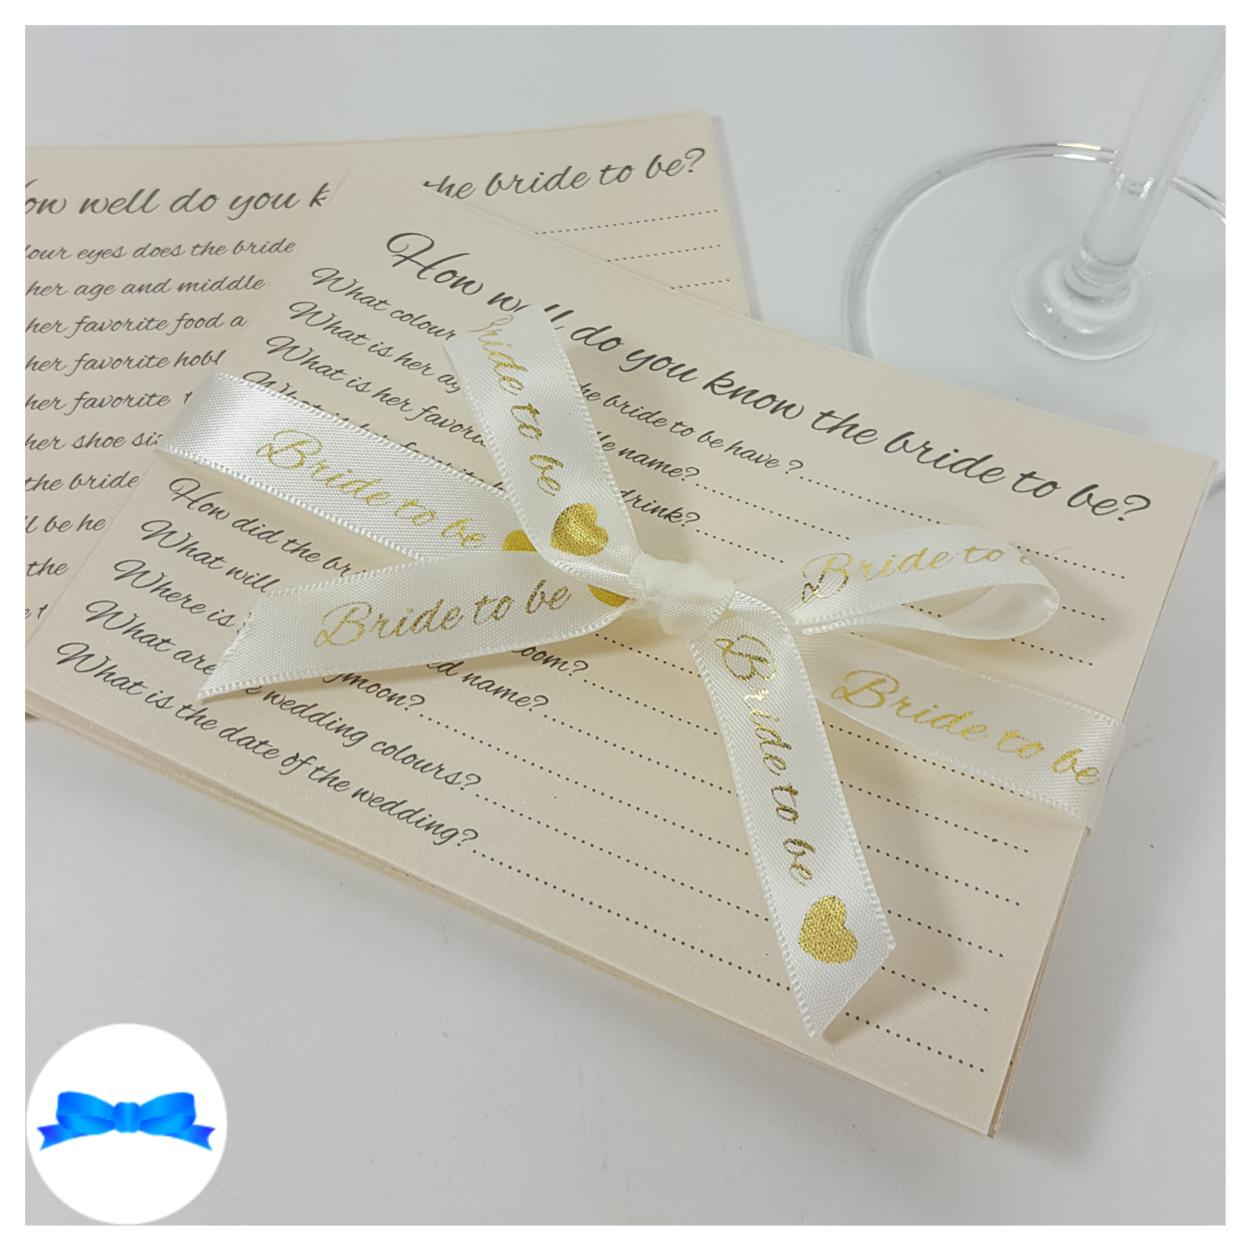 How well do you know the bride cards